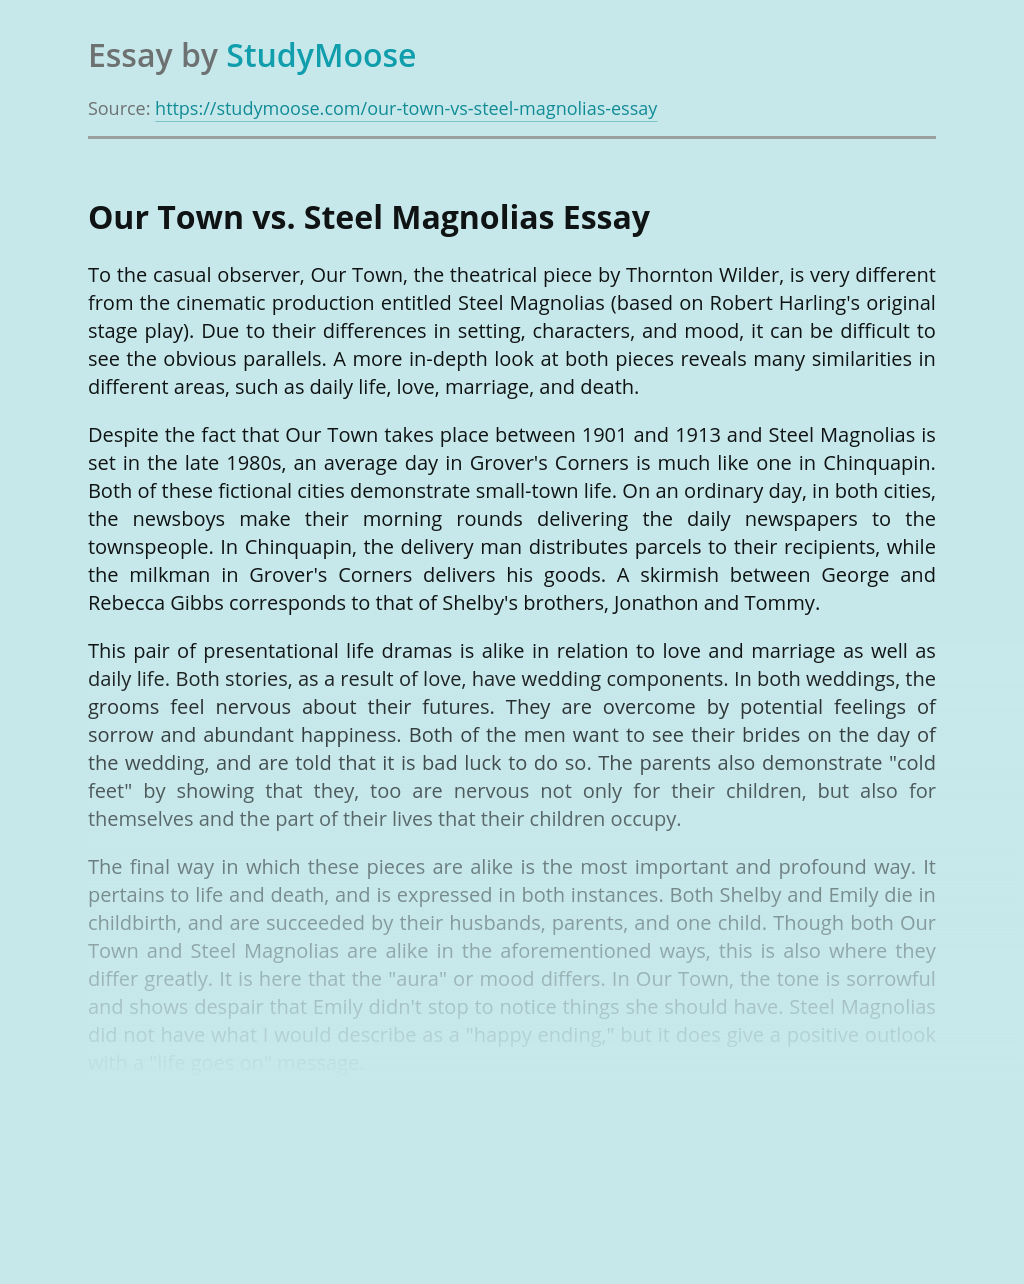 Our Town vs. Steel Magnolias